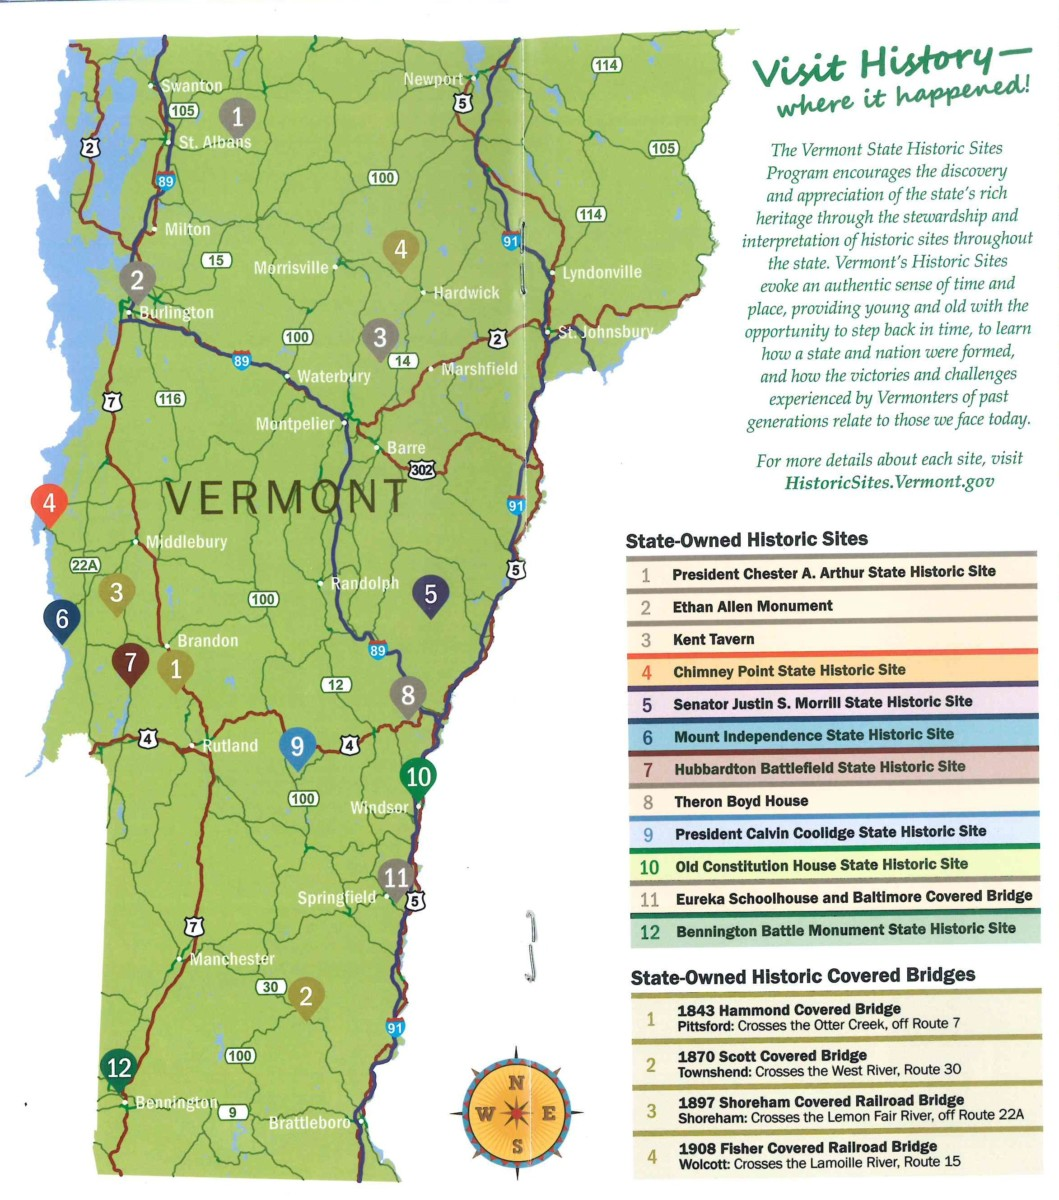 Map of Vermont that highlights the 12 state historic sites. Includes Bennington Monument, President Calvin Coolidge site, President Chester Arthur site, Chimney Point, Hubbardton Battlefield, Senator Justin Morrill Homestead, Mount Independence, Old Constitution House, Eureka Schoolhouse, Ethan Allen Monument, Kent Tavern, and Theron Boyd House. Also highlights 4 state-owned covered bridges. Includes 1843 Hammond Covered Bridge in Pittsford, 1870 Scott Covered Bridge in Townshend, 1897 Shoreham Covered Railroad Bridge in Shoreham, and 1908 Fisher Covered Railroad Bridge in Wolcott. Image includes following text: The Vermont State Historic Sites Program encourages the discovery and appreciation of the state's rich heritage through the stewardship and interpretation of historic sites throughout the state. Vermont's Historic Sites evoke an authentic sense of time and place, providing young and old with the opportunity to step back in time, to learn how a state and nation were formed, and how the victories and challenges experienced by Vermonters of past generations relate to those we face today. For more details about each site, visit HistoricSites.Vermont.gov